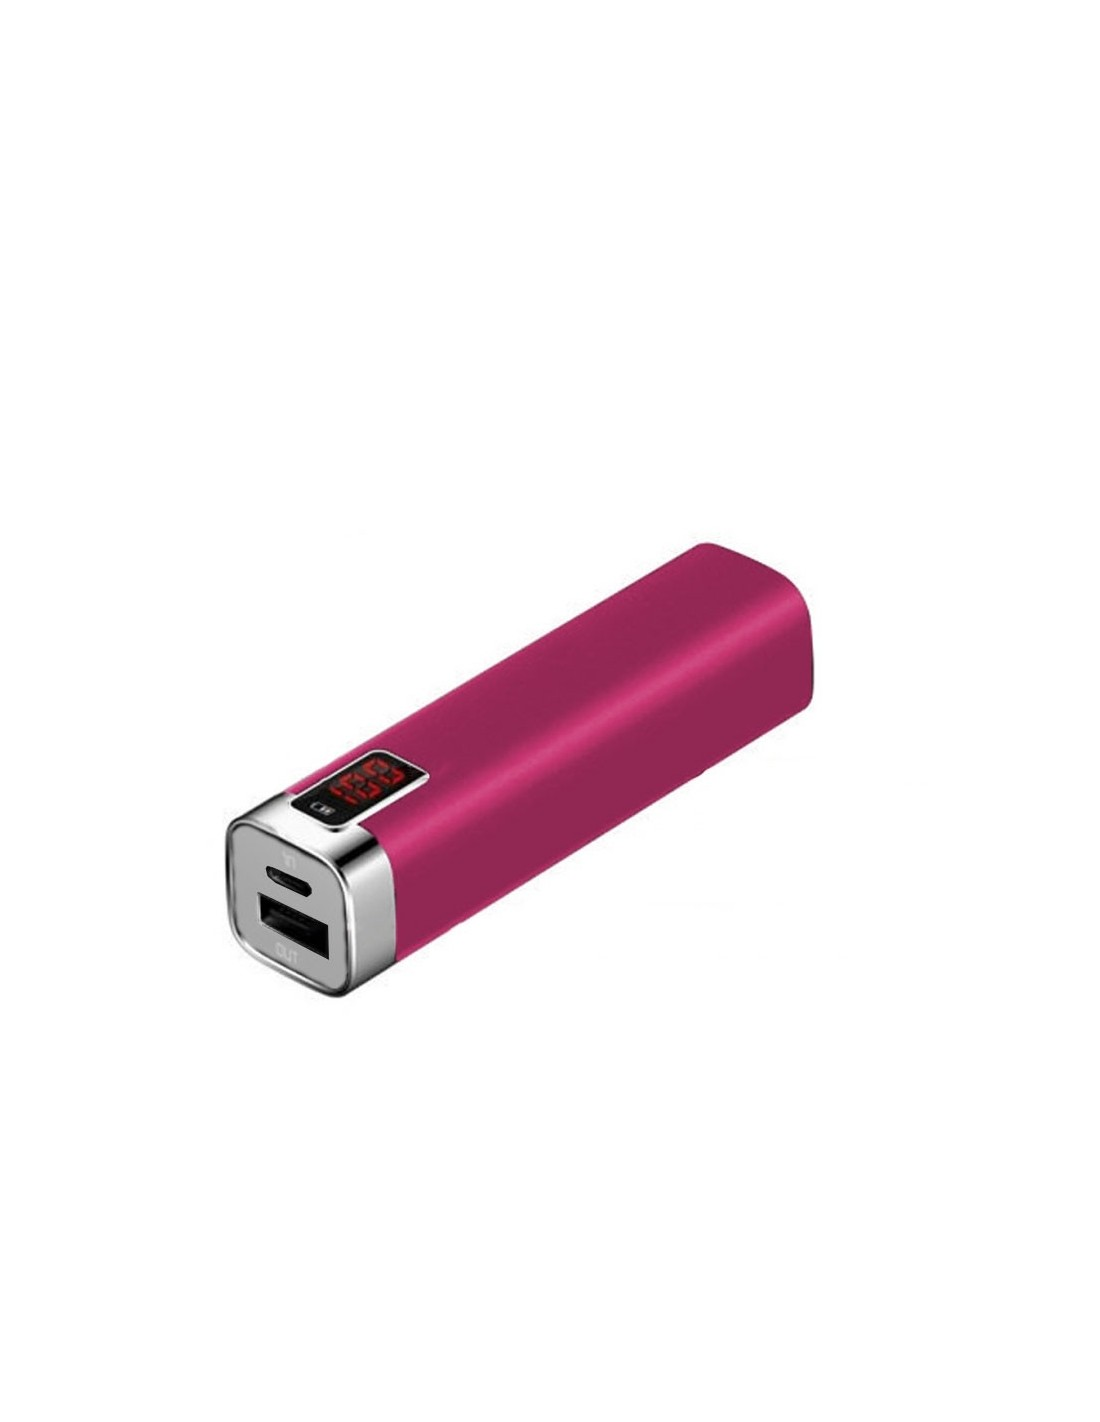 PowerBank 2600 mAh - Mobiele Oplader - Roze - The Captain's Collection - Nautische Accessoires - PB2600RO